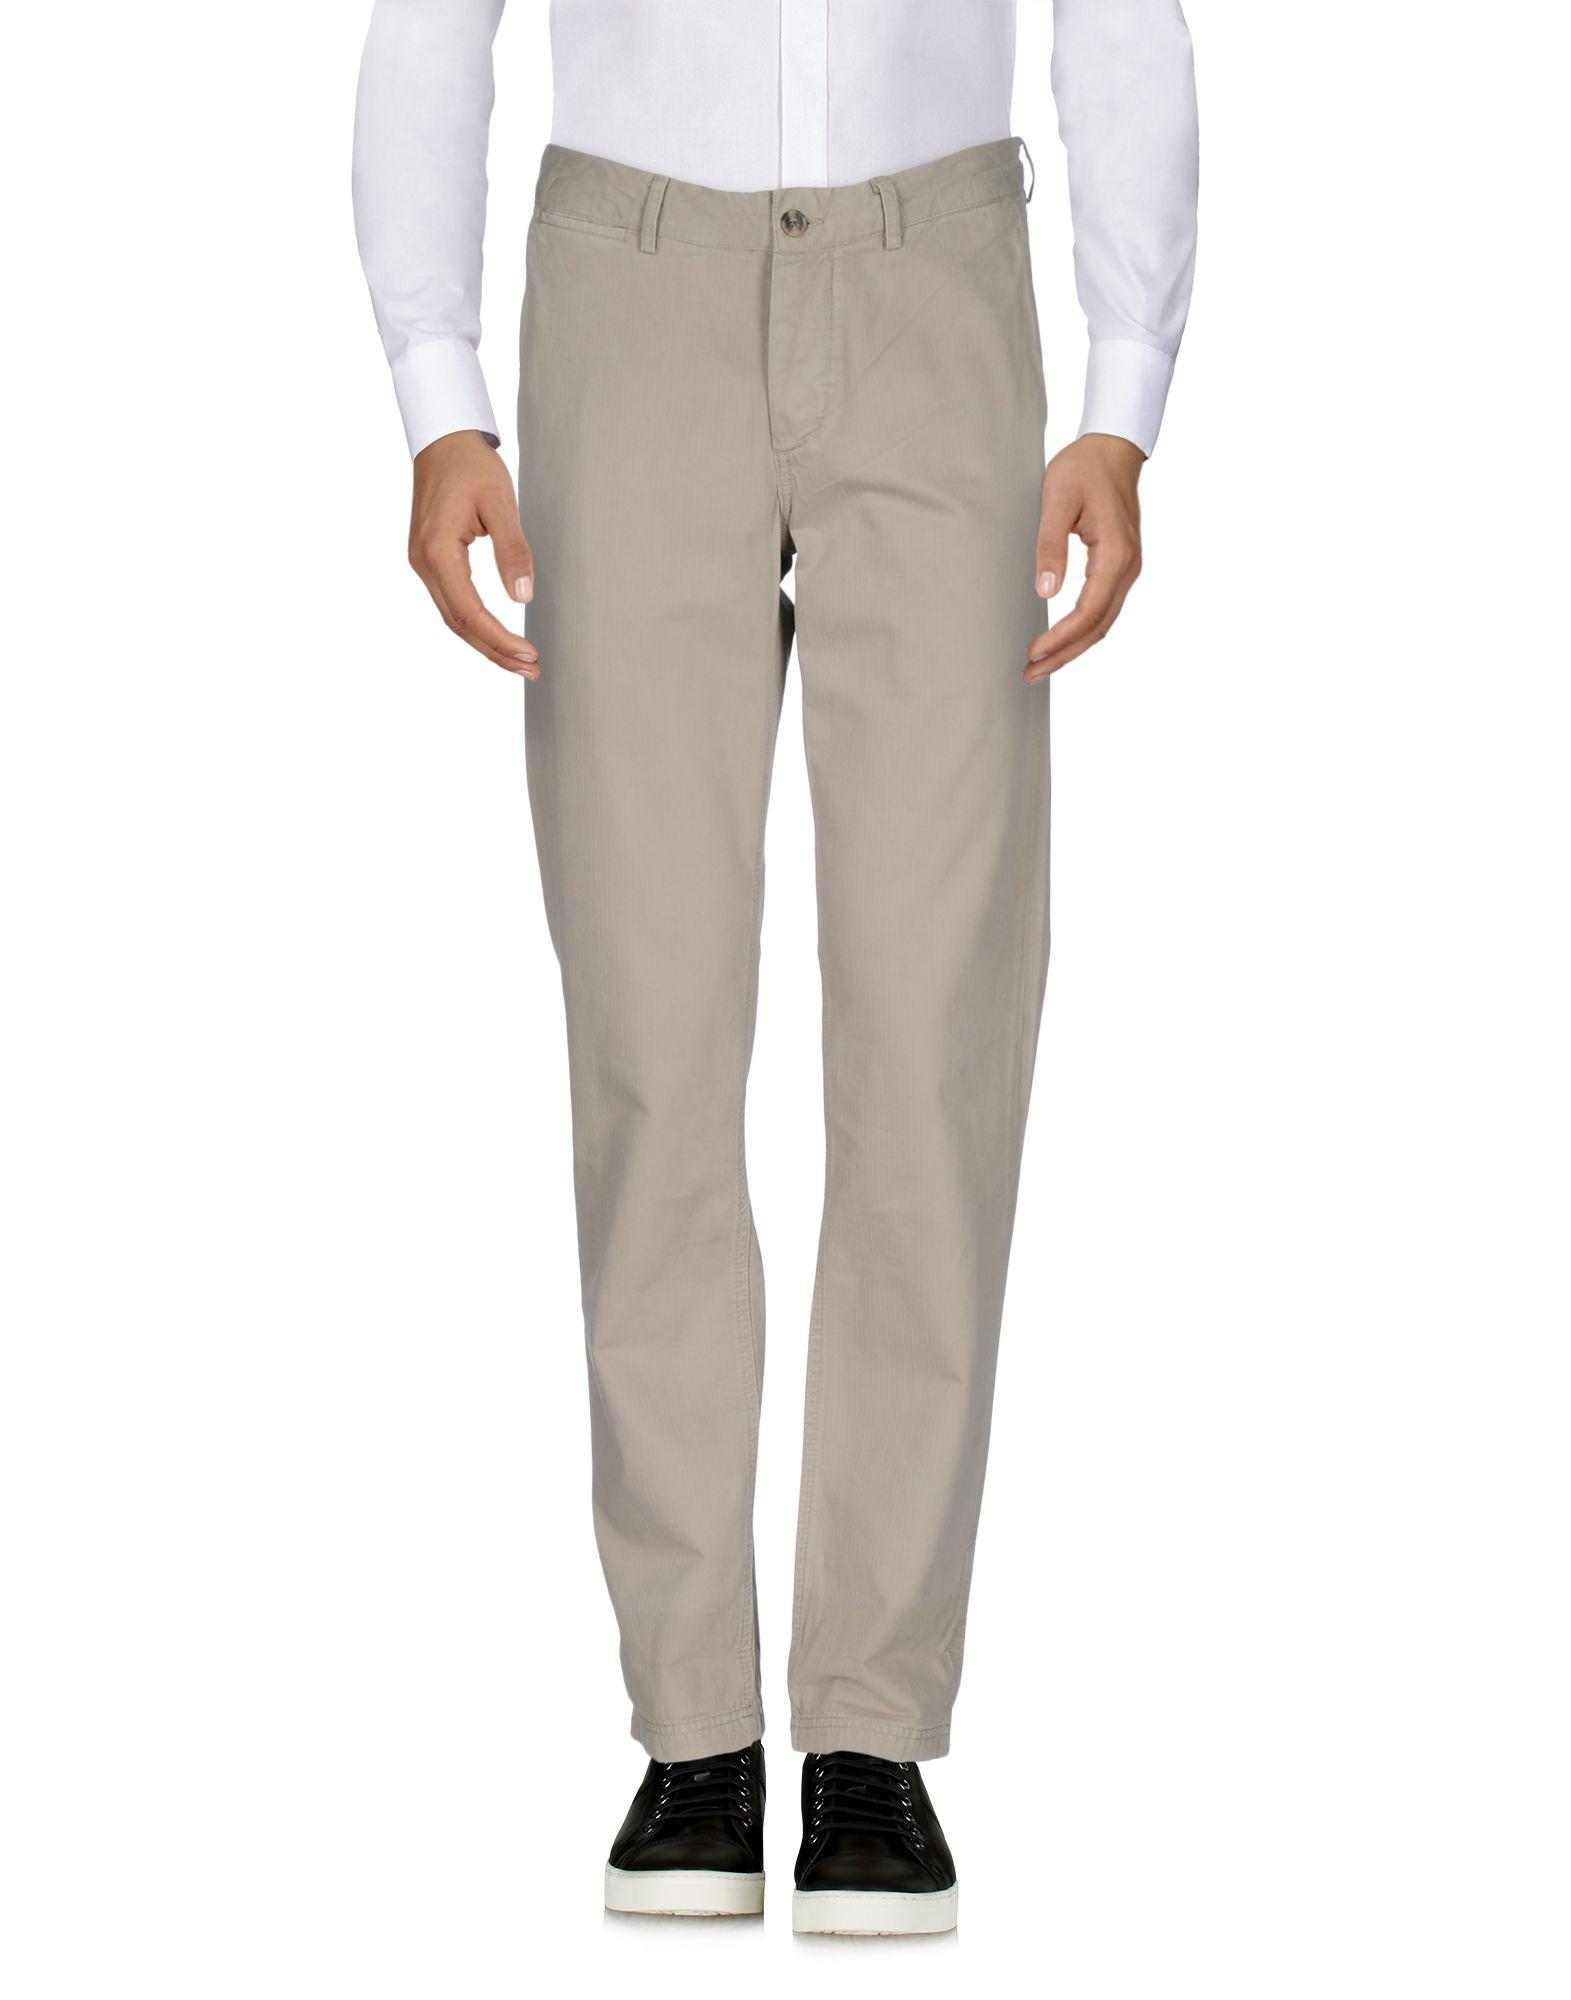 Amazing Clearance Reliable TROUSERS - Casual trousers Ben Sherman Free Shipping 2018 Unisex Release Dates Online ZUs0Dz